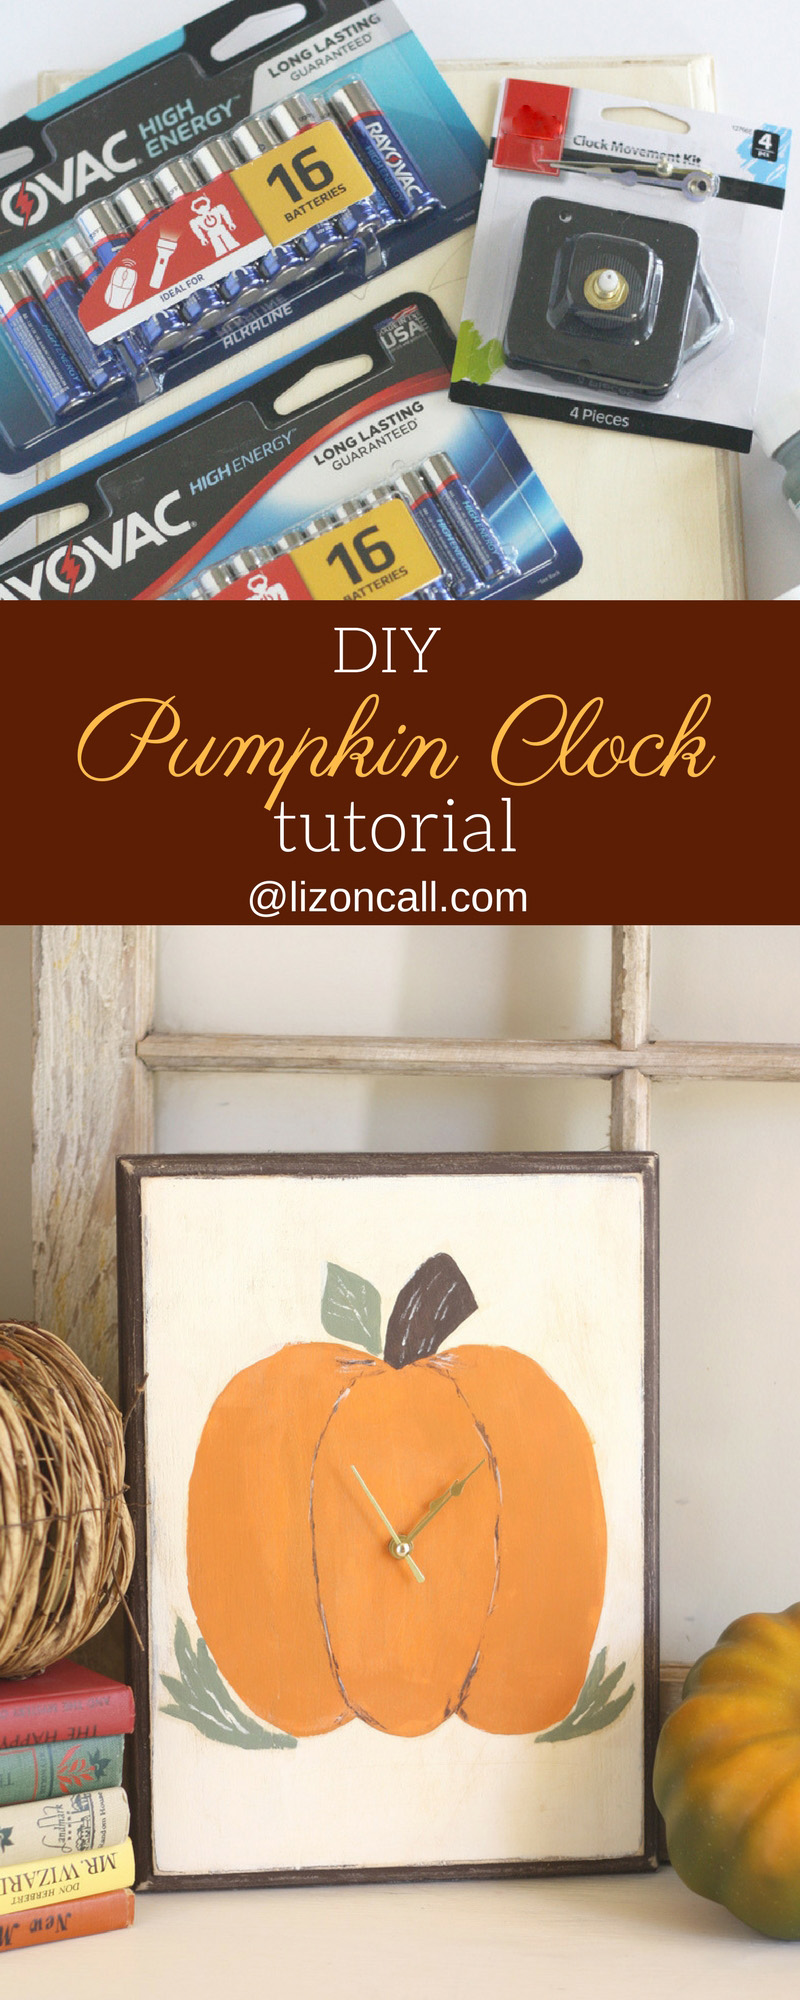 Add some fun to your fall decor and make your own DIY pumpkin clock using items found at Walmart. #PoweredByRayovac #SureThing #CollectiveBias #ad